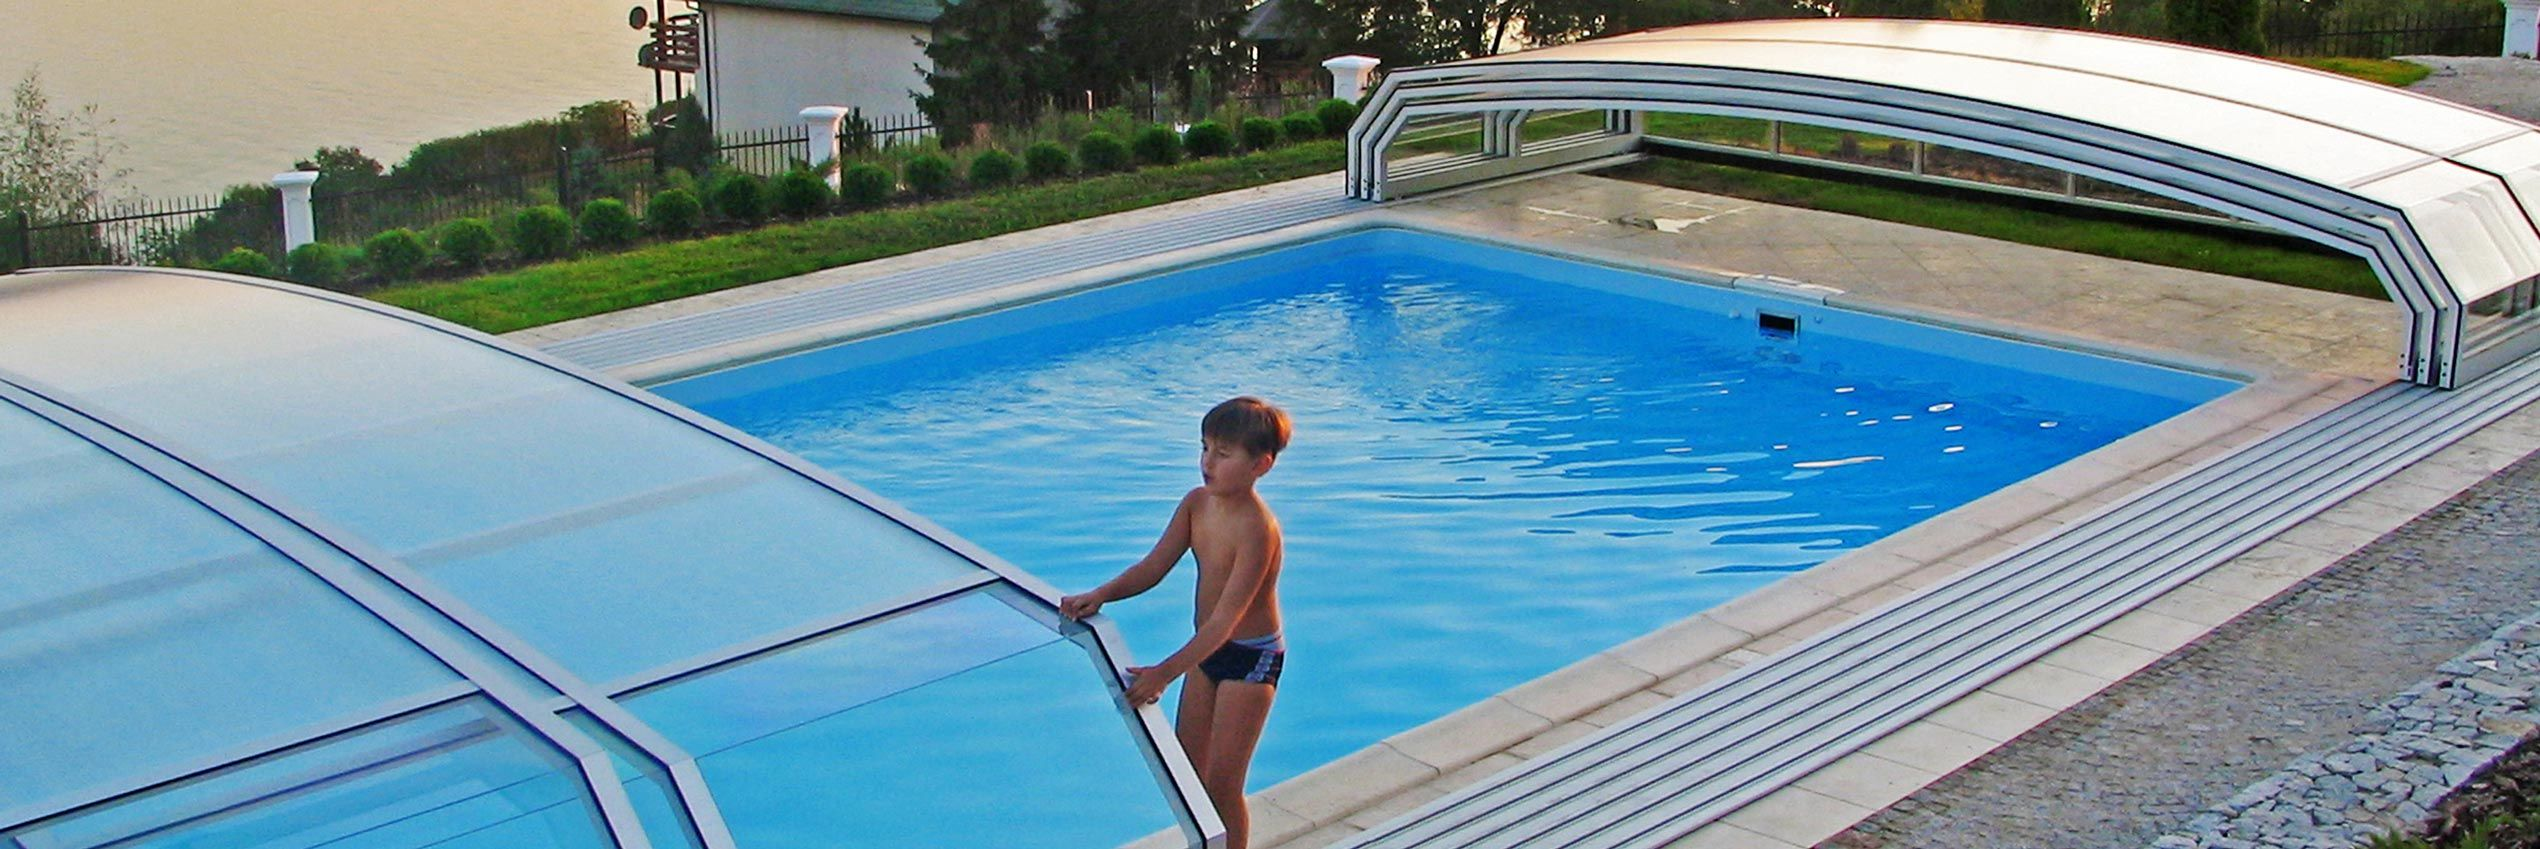 Retractable swimming pool enclosure oceanic low sunrooms Retractable swimming pool enclosures